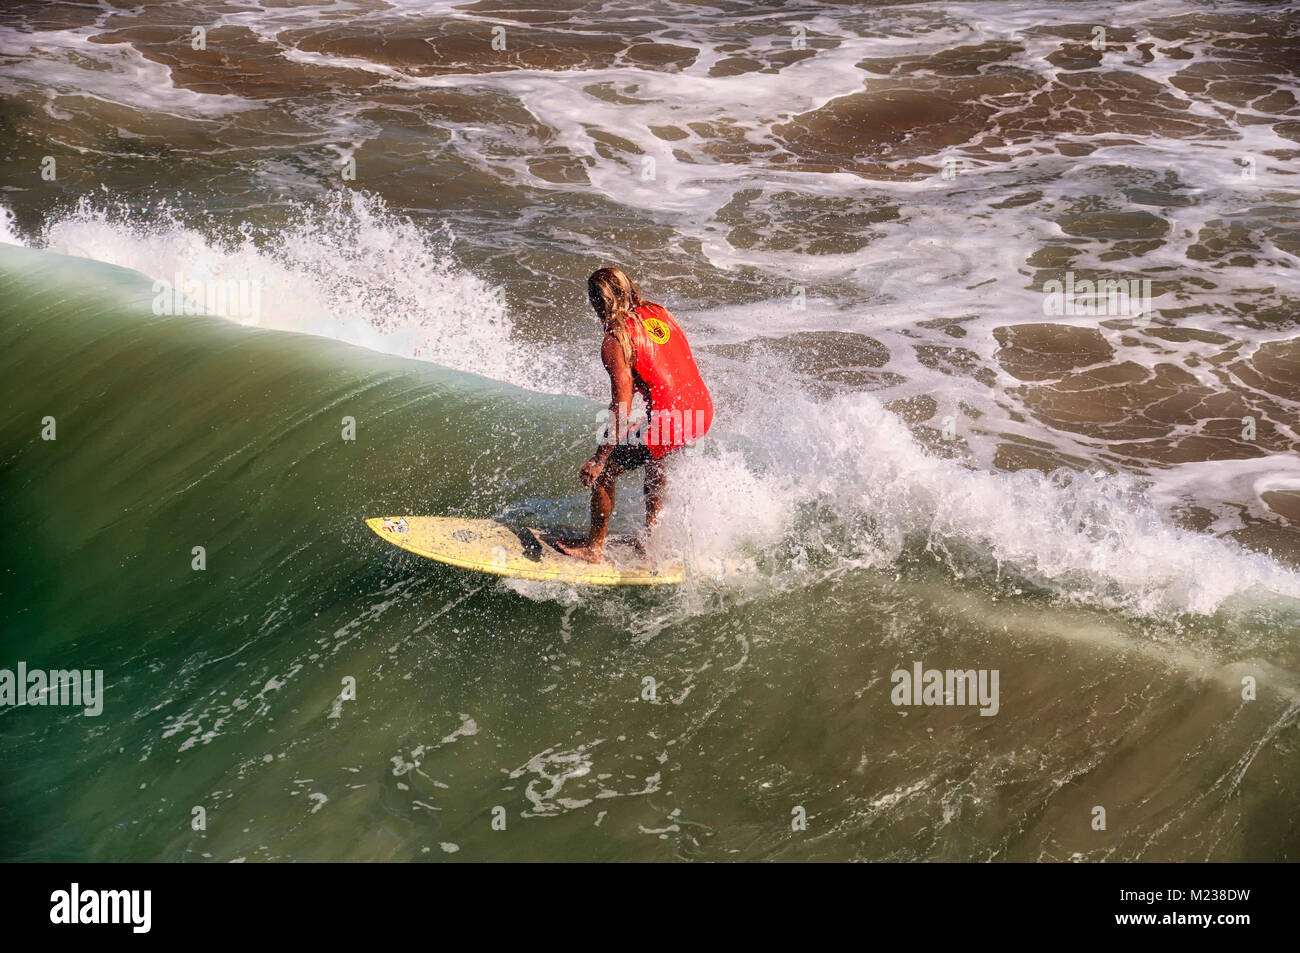 September 30, 2016.  Manhattan Beach, California. A surfer riding the waves at manhattan beach california on the - Stock Image